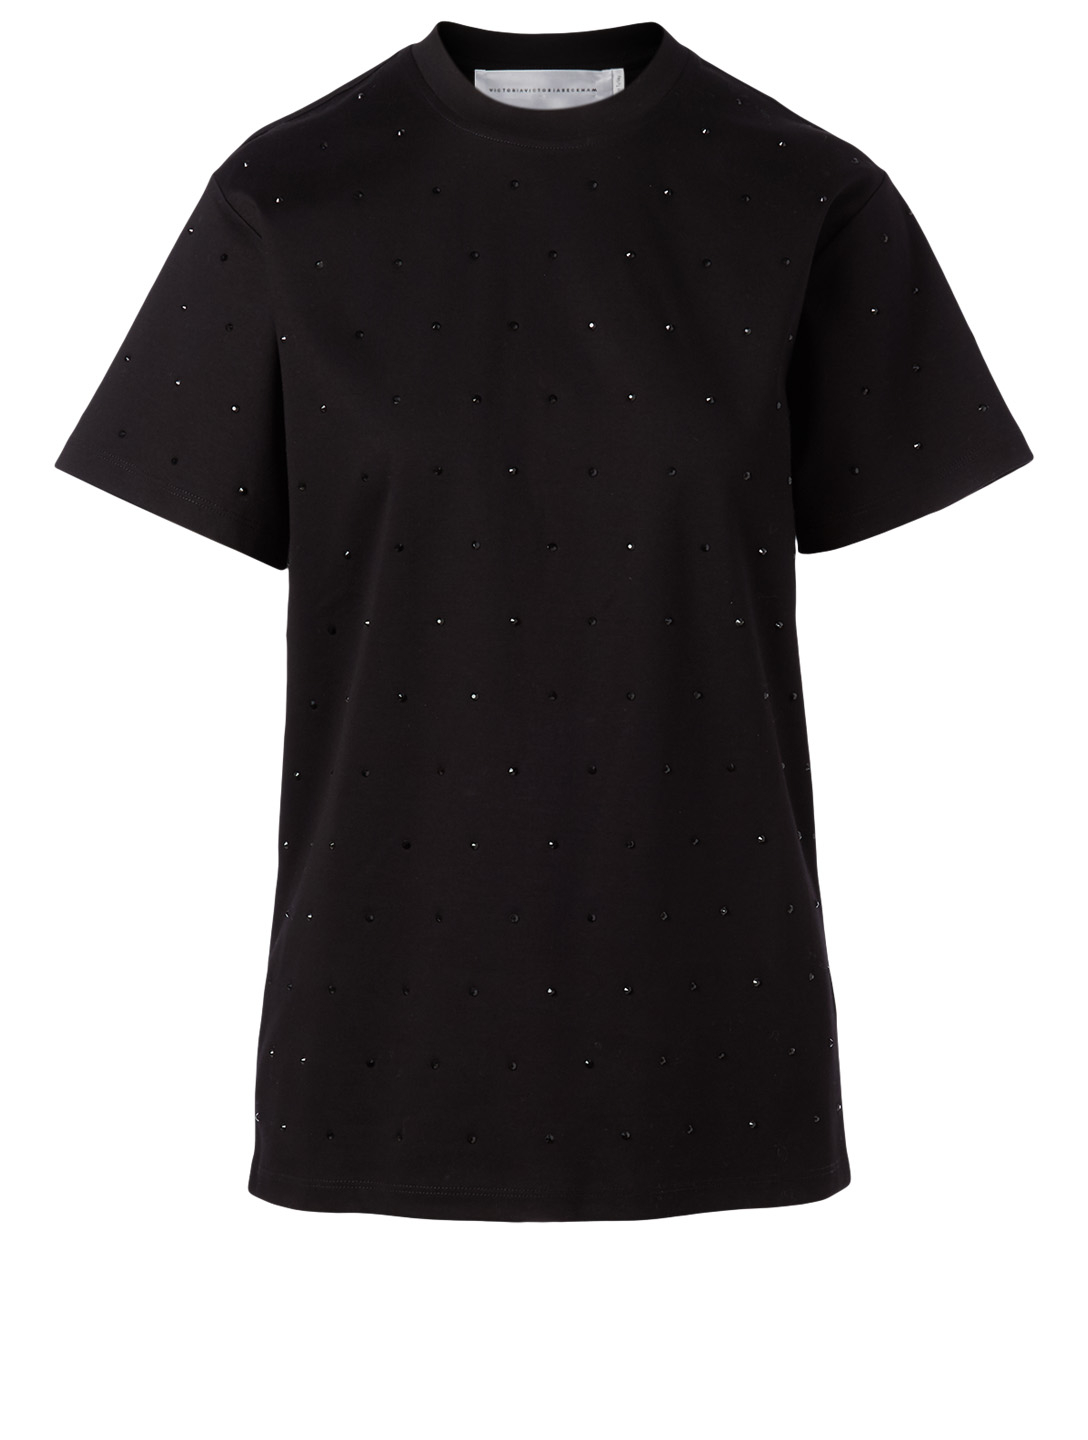 VICTORIA VICTORIA BECKHAM Cotton Embellished T-Shirt Women's Black